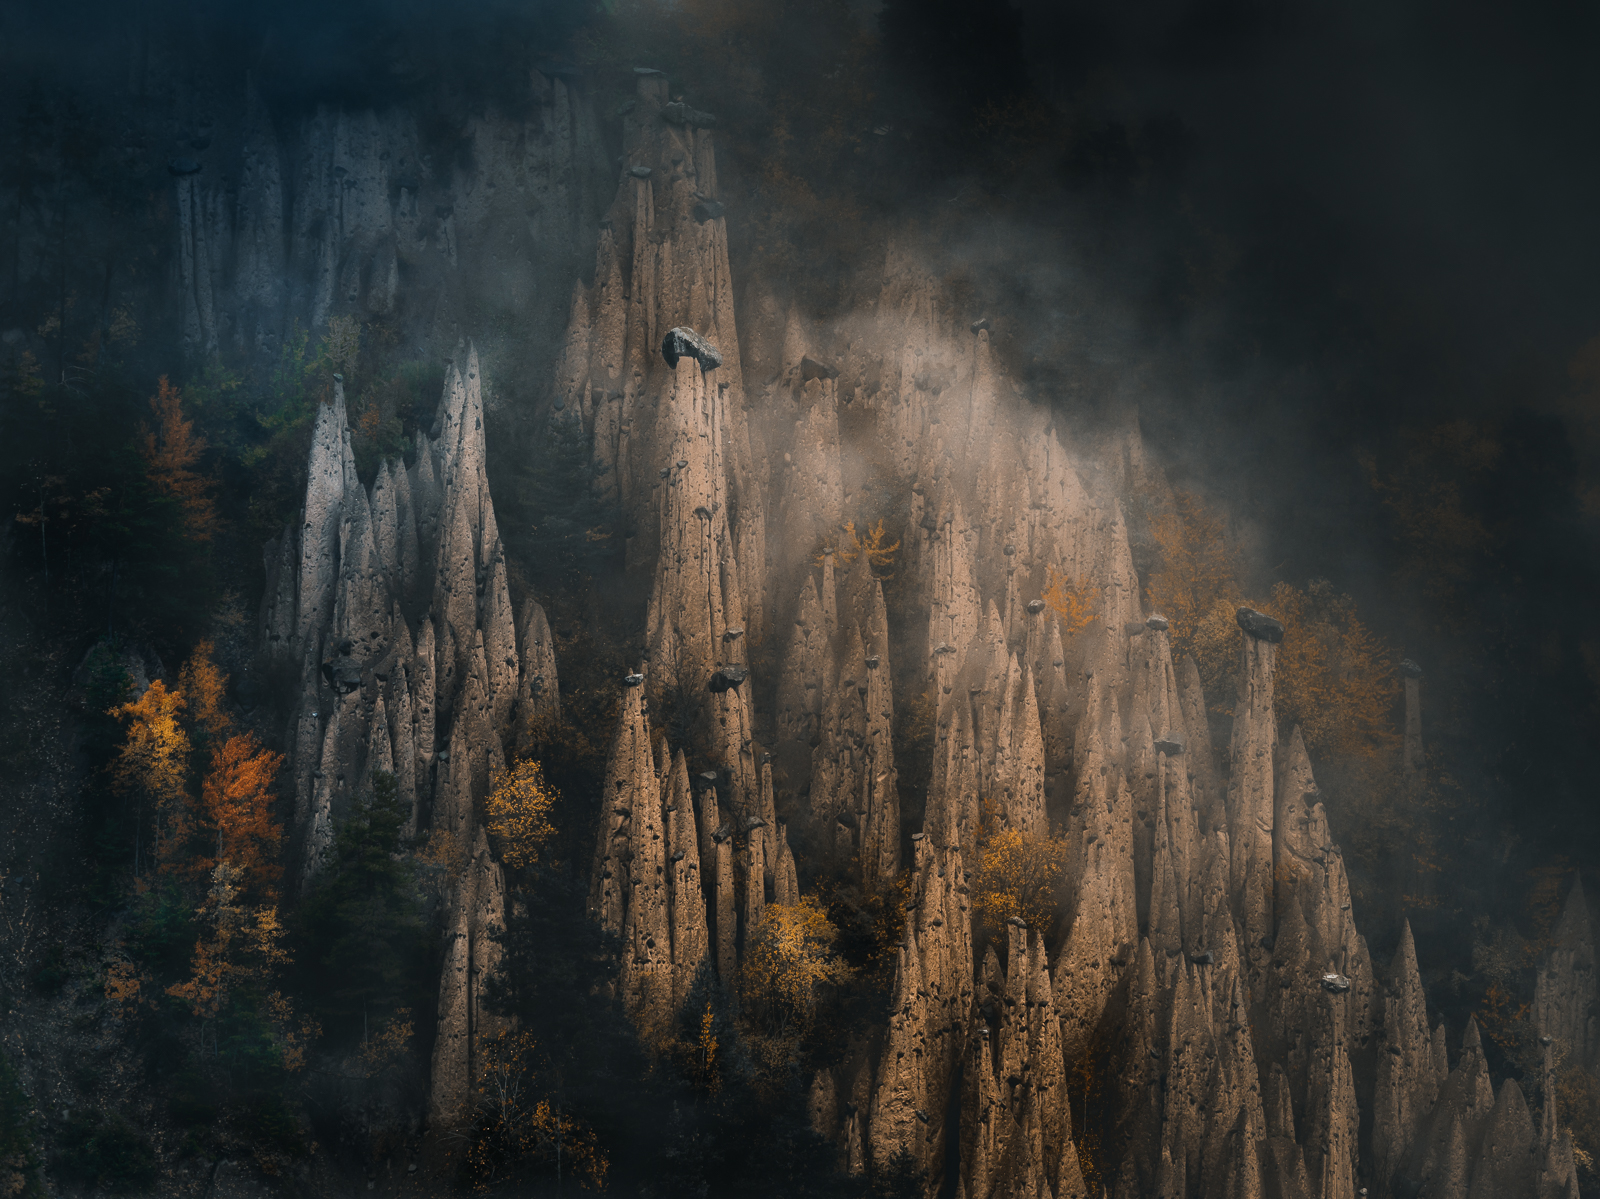 Earth Pyramids of Dolomites